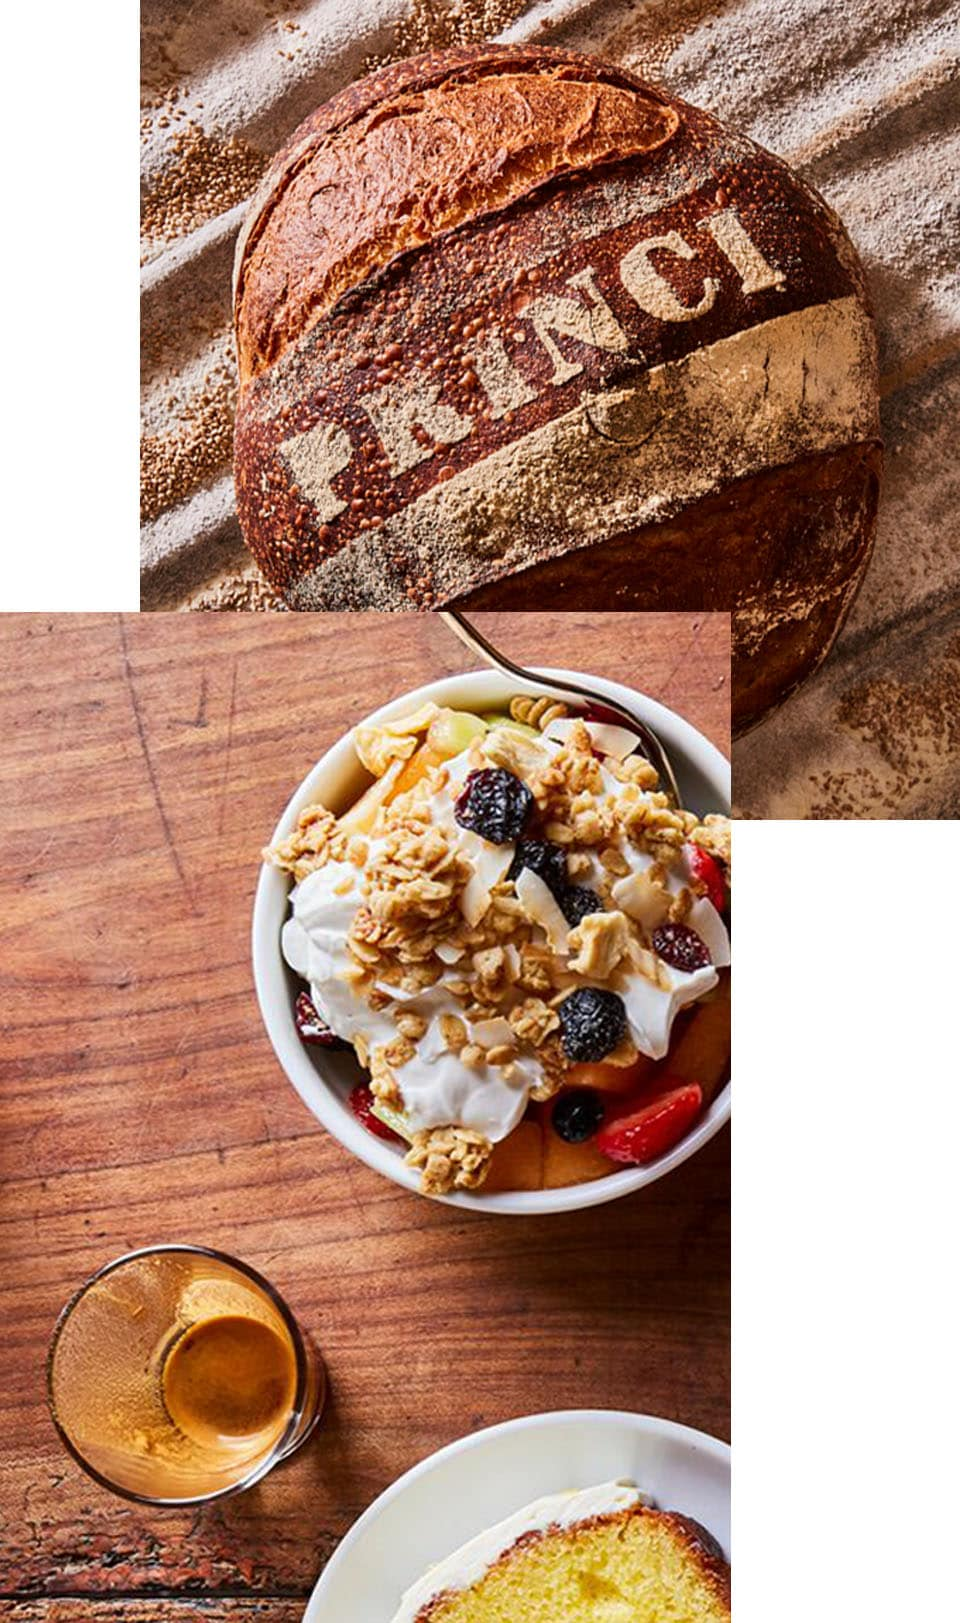 Image collage of a loaf of bread, pastries, and fruit and yogurt